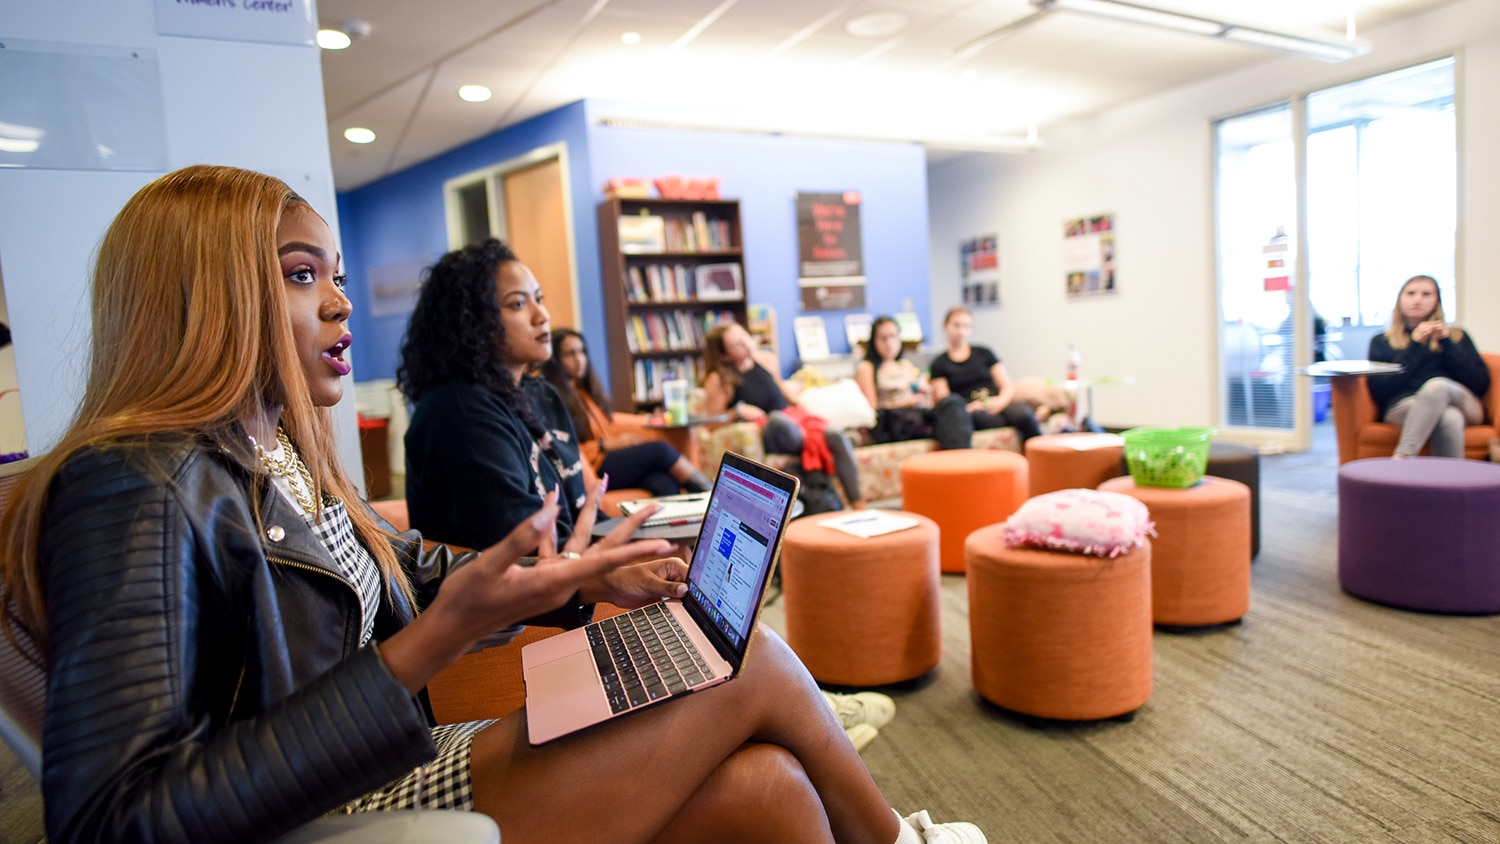 A group of students engages in discussion at the NCState Women's Center.